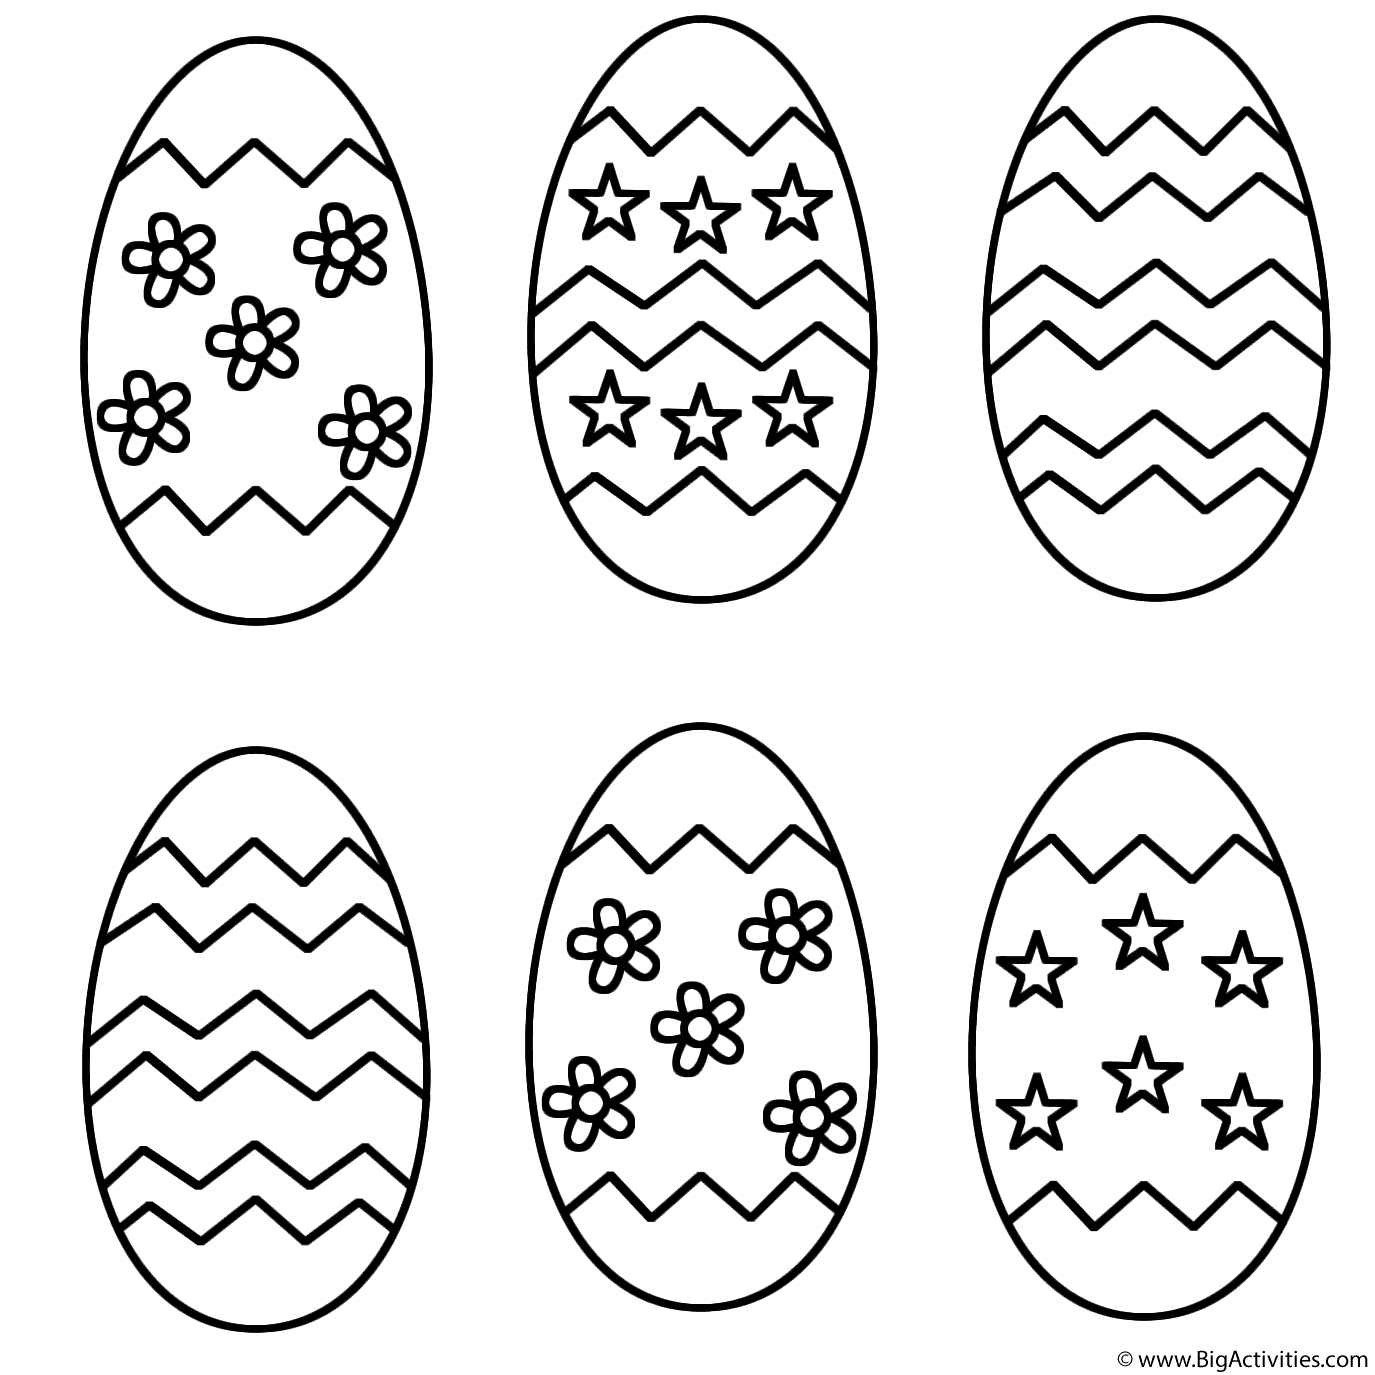 Six Easter Eggs